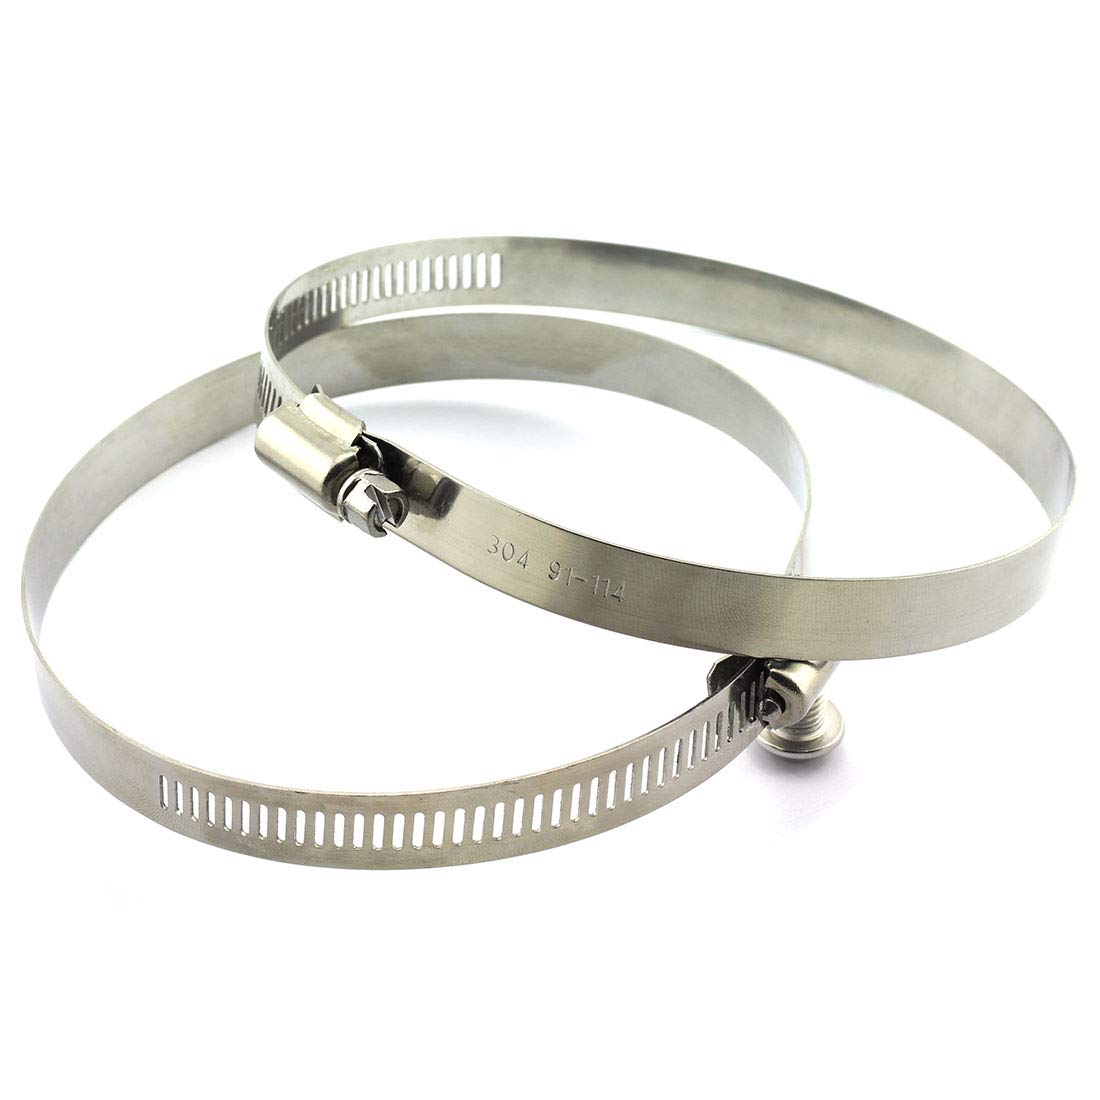 HJ Garden 2pcs 91-114mm 304 Stainless Steel Hose Clamp Adjustable Screw Drive Tube Fastener Fuel Line Hoop Pipe Worm Clip 3-3/5 to 4-1/2 inch